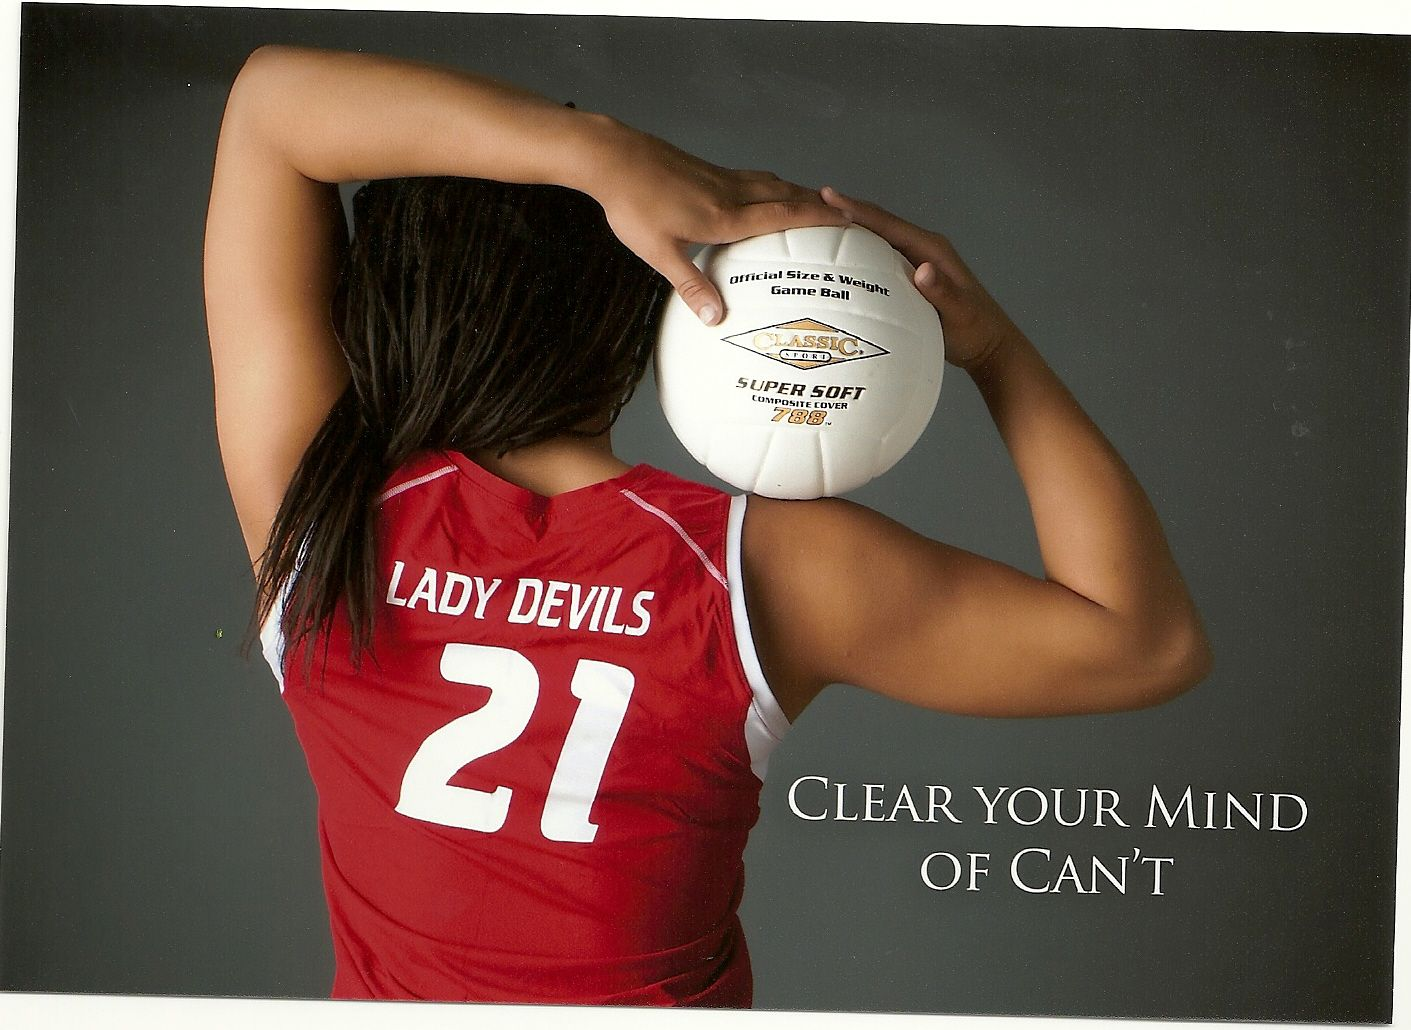 Love the quote Hate the jersey ;) Volleyball photos